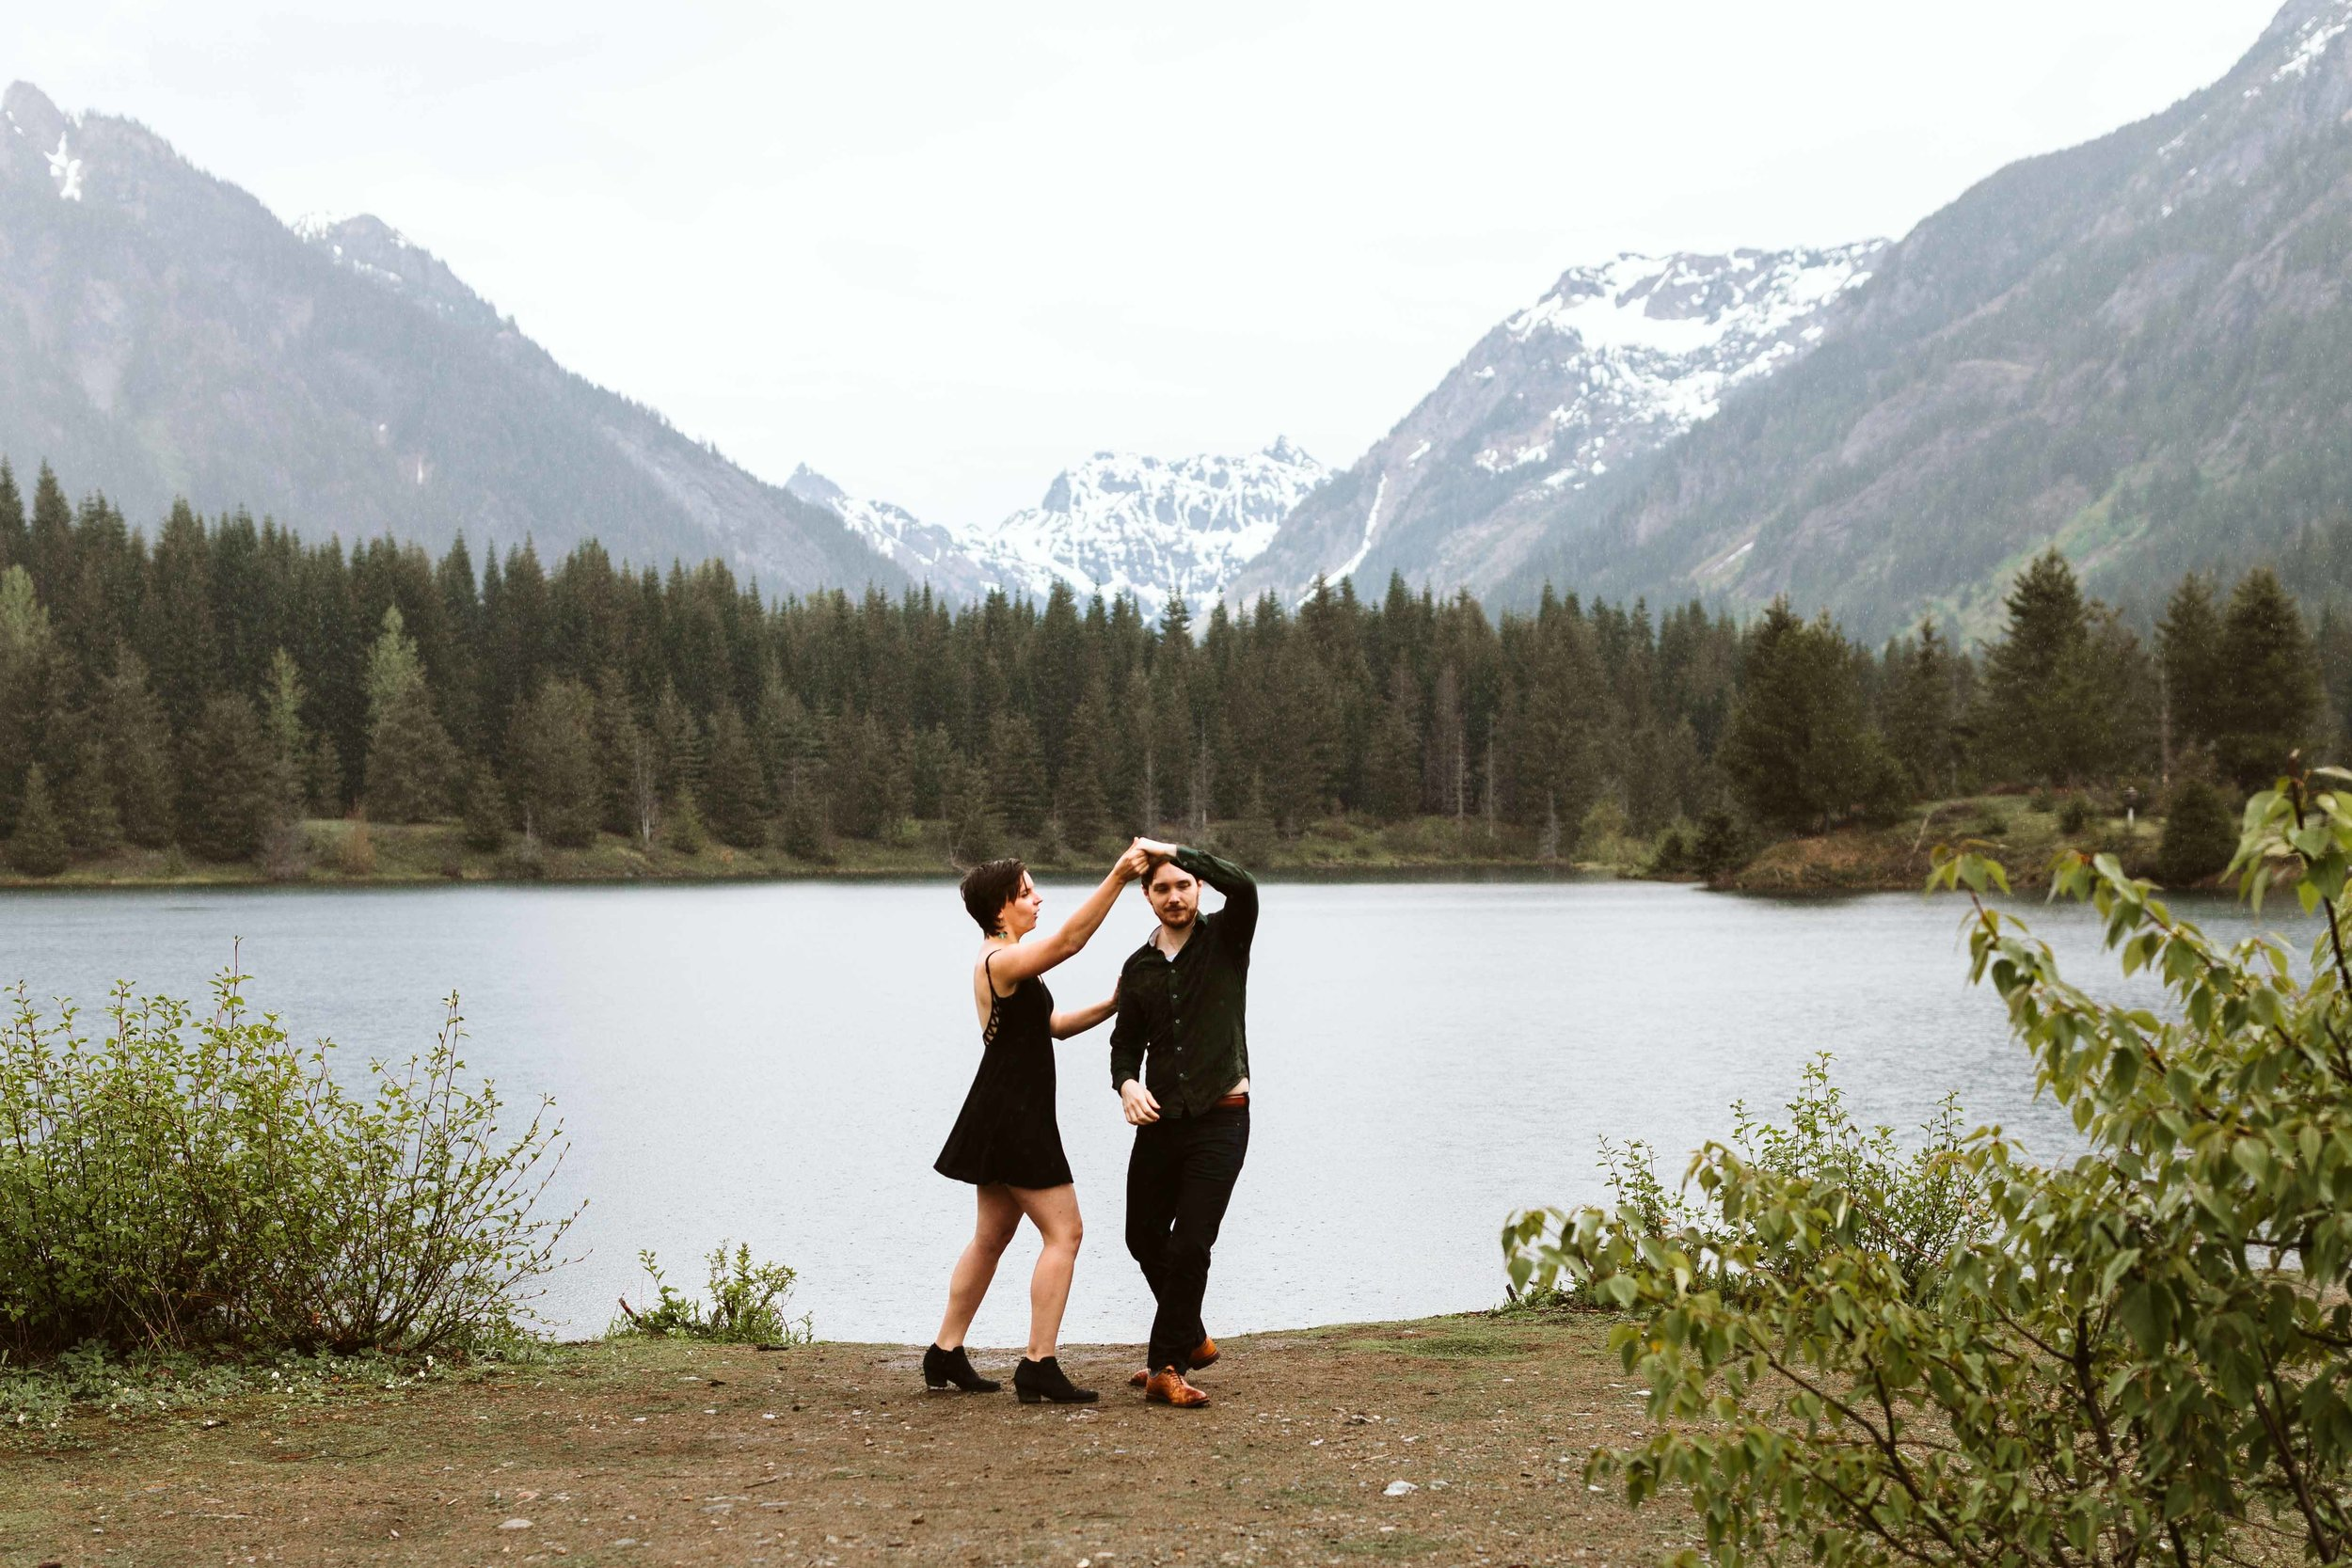 gold-creek-pond-trail-engagement-55.jpg